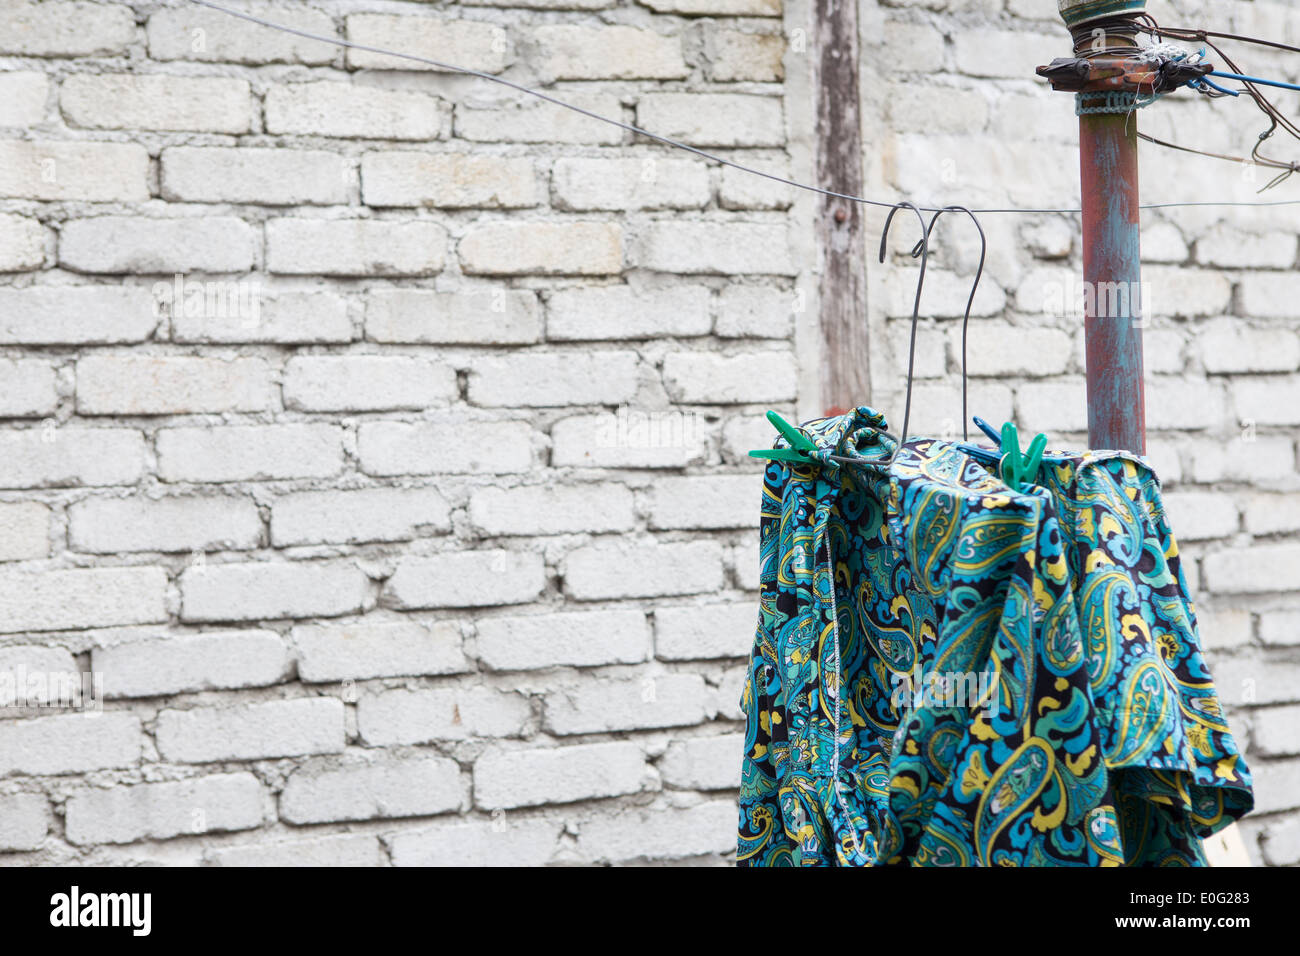 Blue and green patterned shirt on a wire clothesline in front of a ...